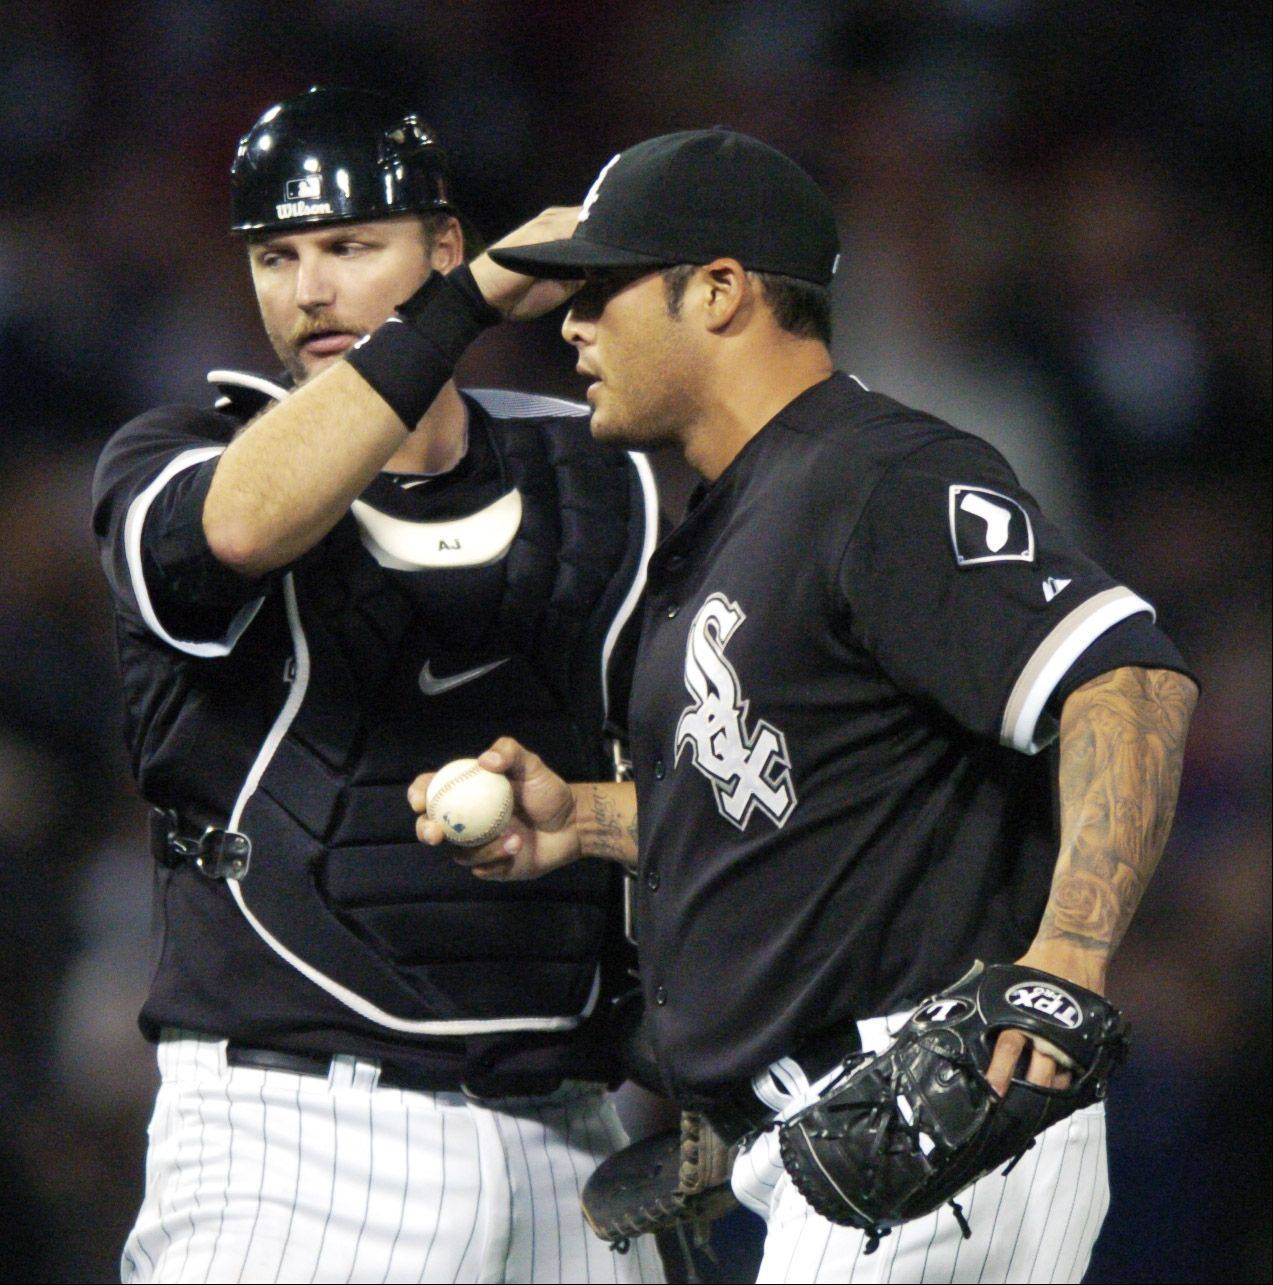 Sox pitcher Sergio Santos gets a pat on the head from catch A.J. Pierzynski after earning a save against the Cubs during Wednesday's game at U.S. Cellular Field.